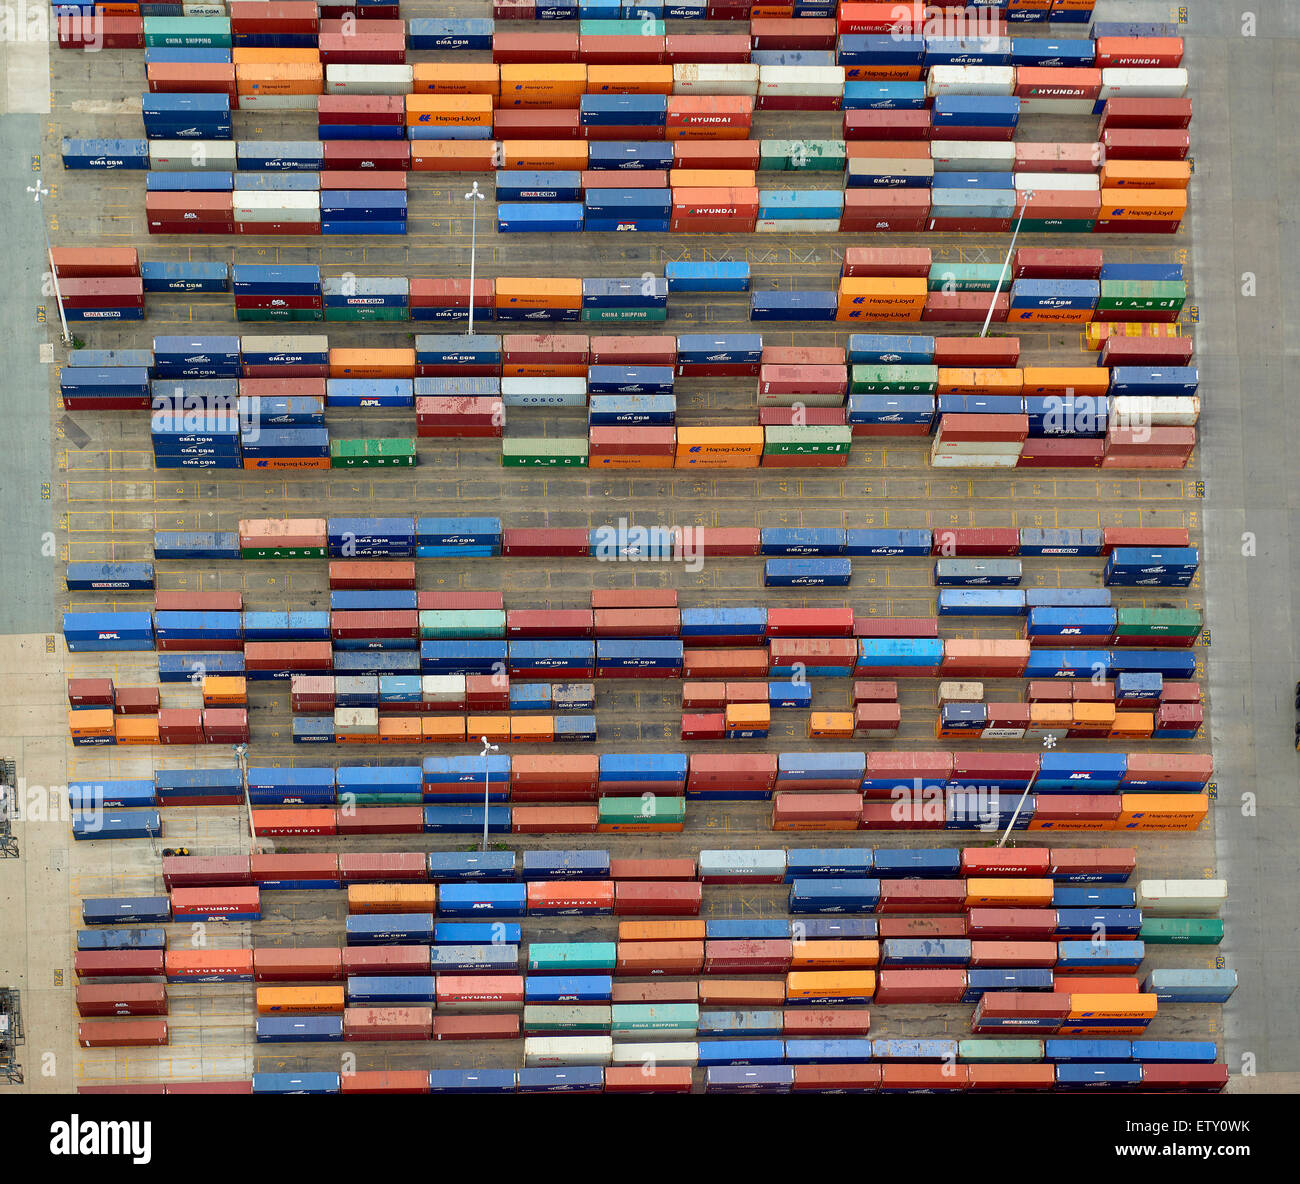 Shipping containers, Southampton Docks, southern England, UK - Stock Image